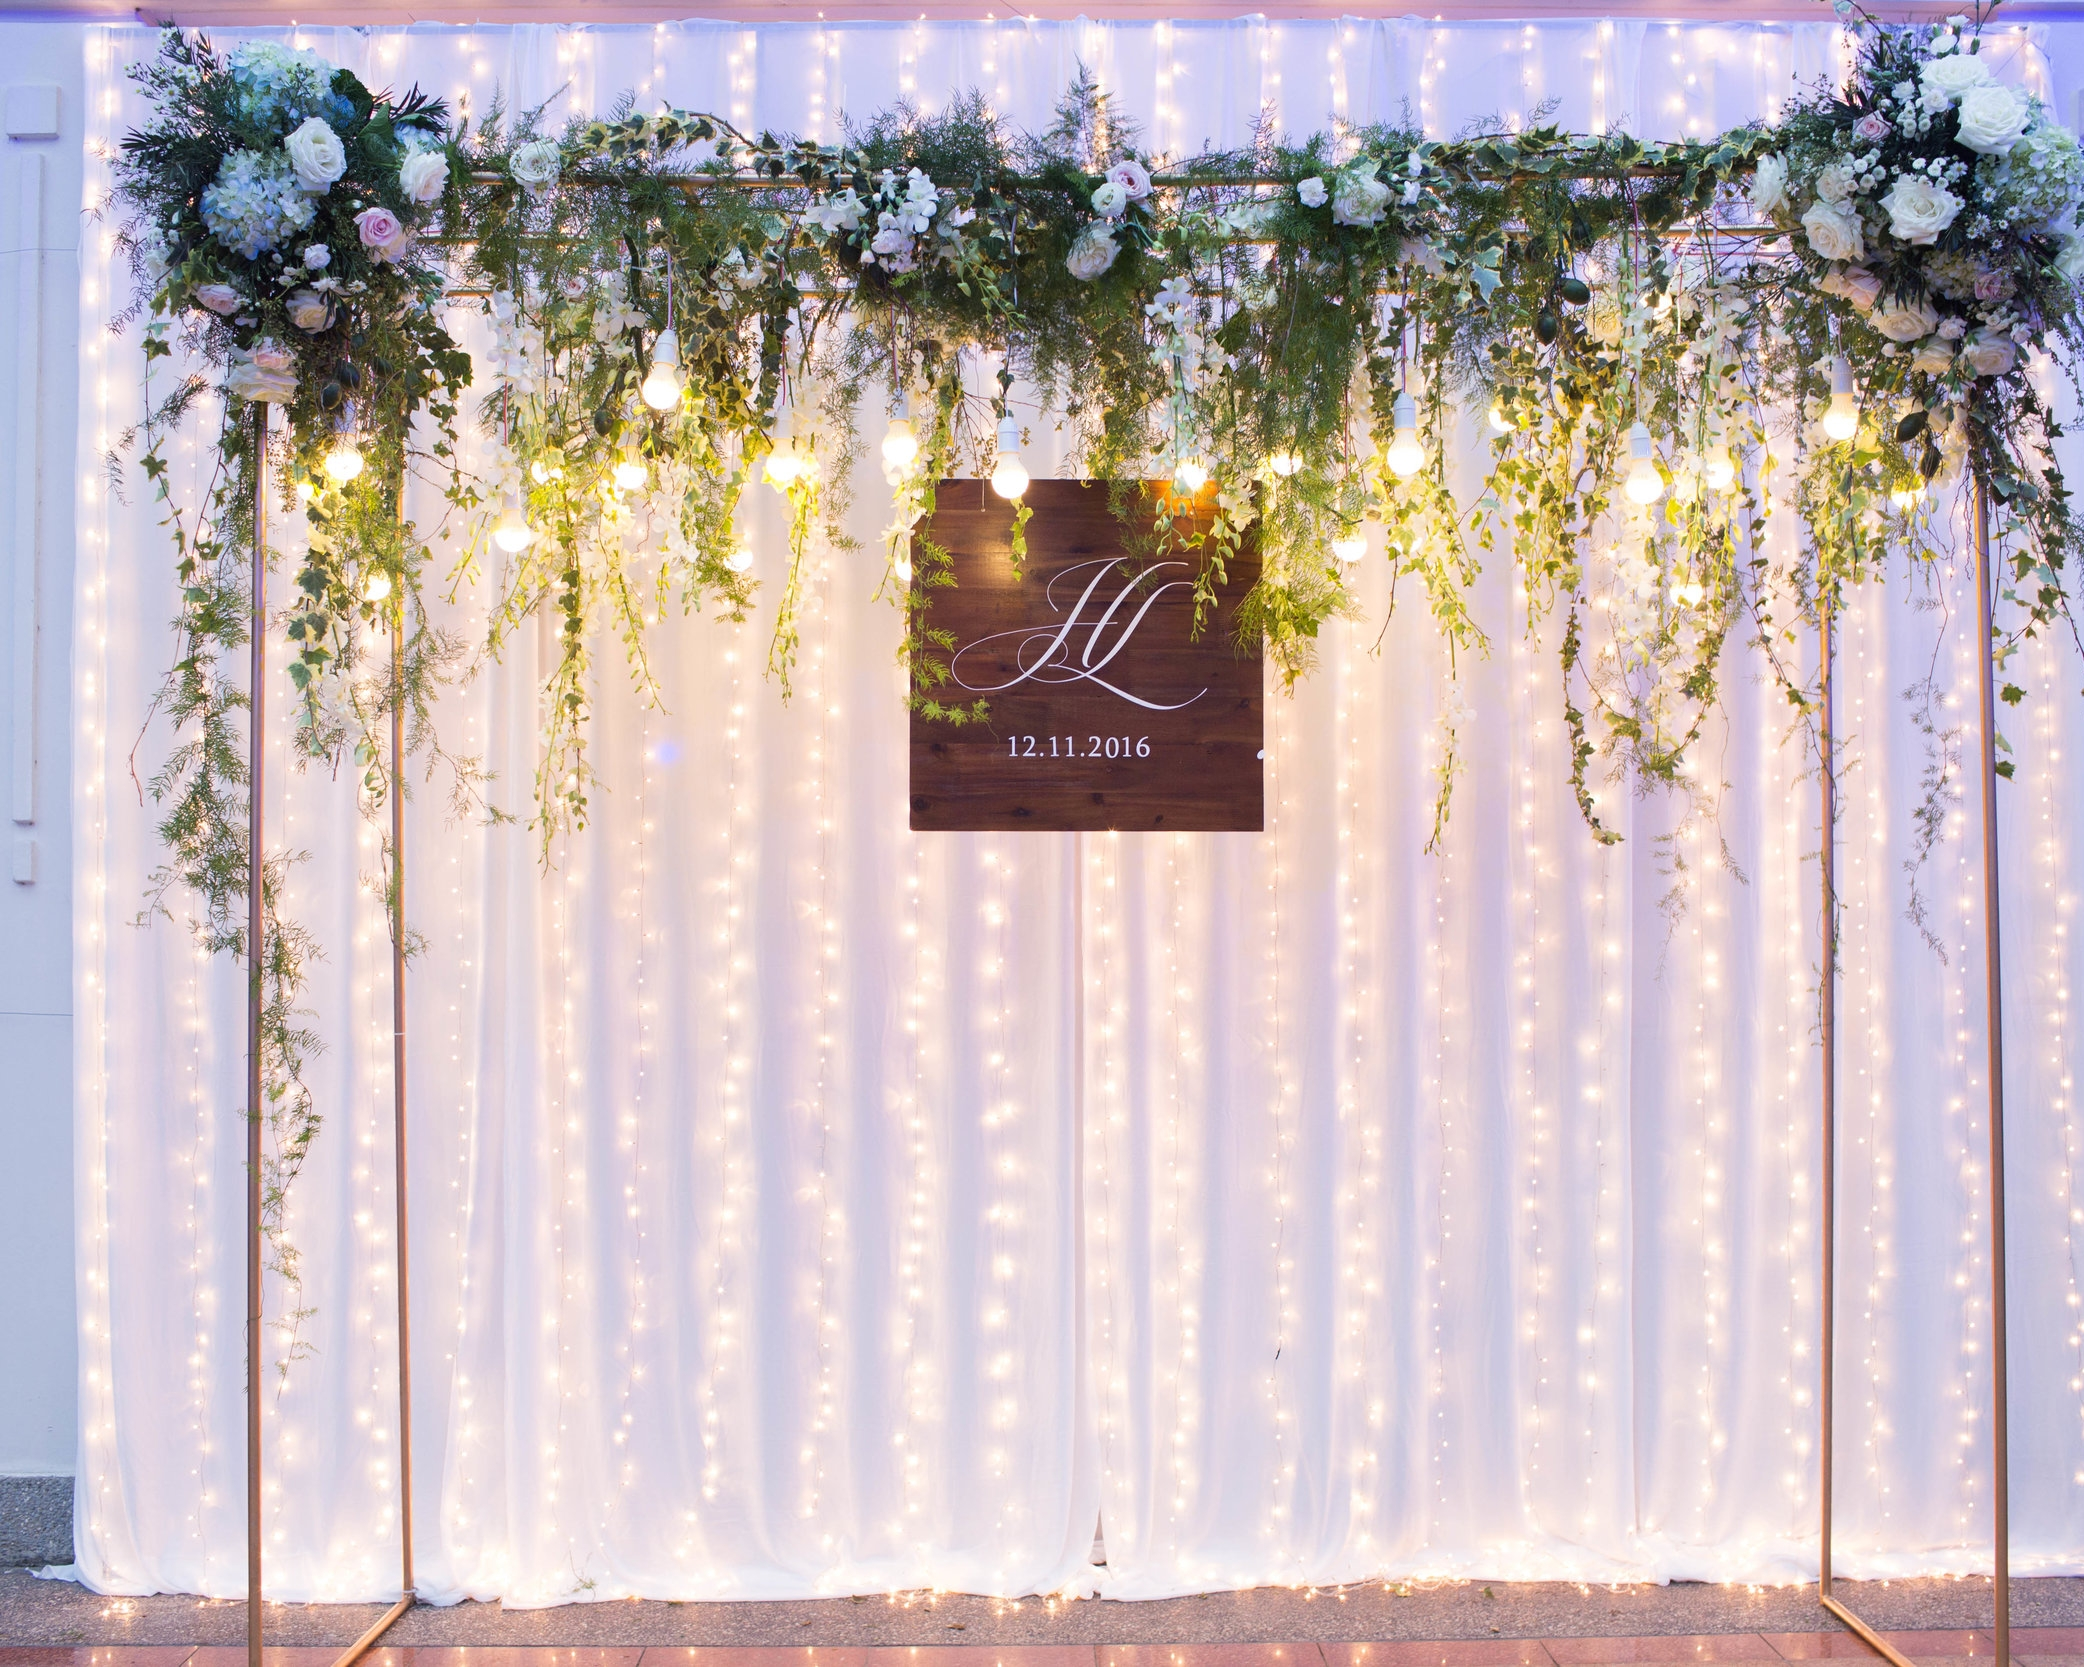 WEDDING CEREMONY & RECEPTION - With wedding ceremony, Thuy Linh & Thanh Huy desired to have natural rustic cozy celebration with their family and loves one, and the 5-star Sheraton Hanoi Hotel was their choice of venue.